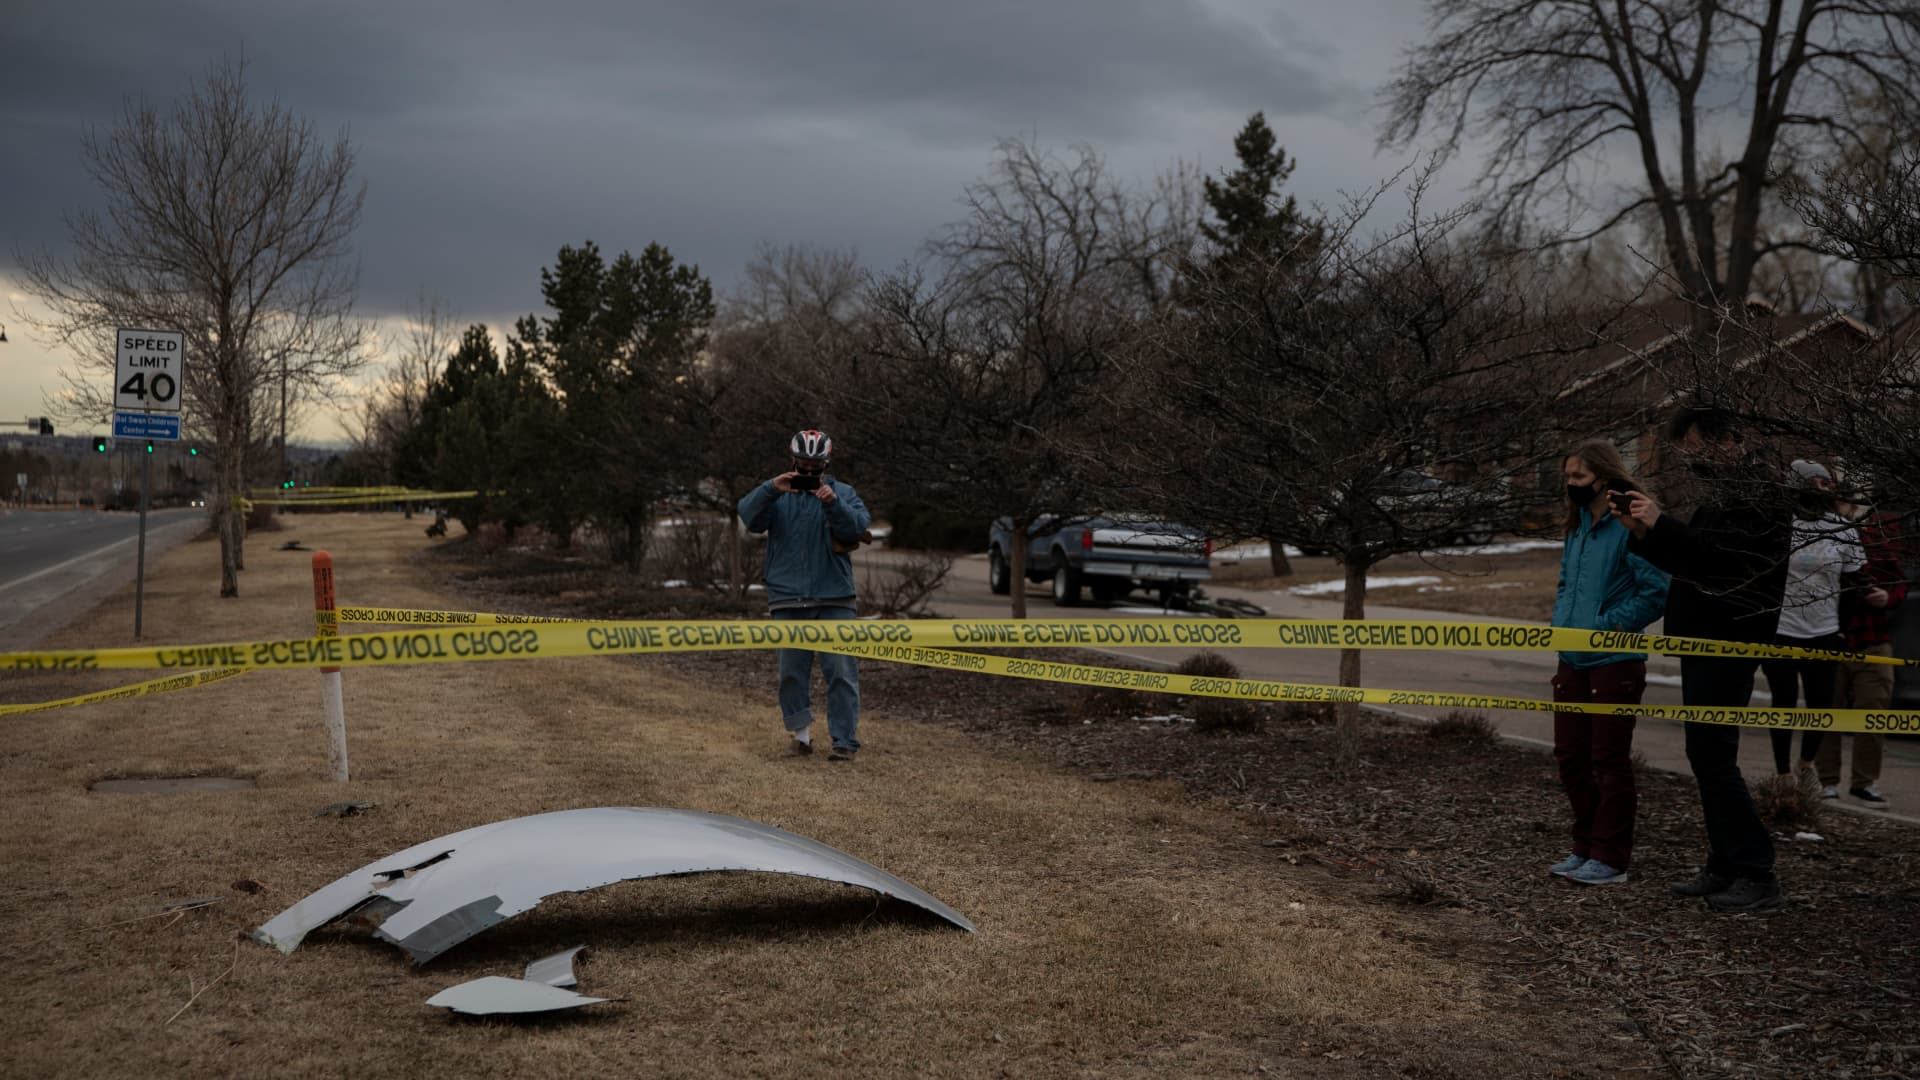 Residents take pictures of debris fallen from a United Airlines airplane's engine on the neighborhood of Broomfield, outside Denver, Colorado, on Feb. 20, 2021. A United Airlines flight suffered a fiery engine failure Feb. 20, shortly after taking off from Denver on its way to Hawaii, dropping massive debris on a residential area before a safe emergency landing, officials said.